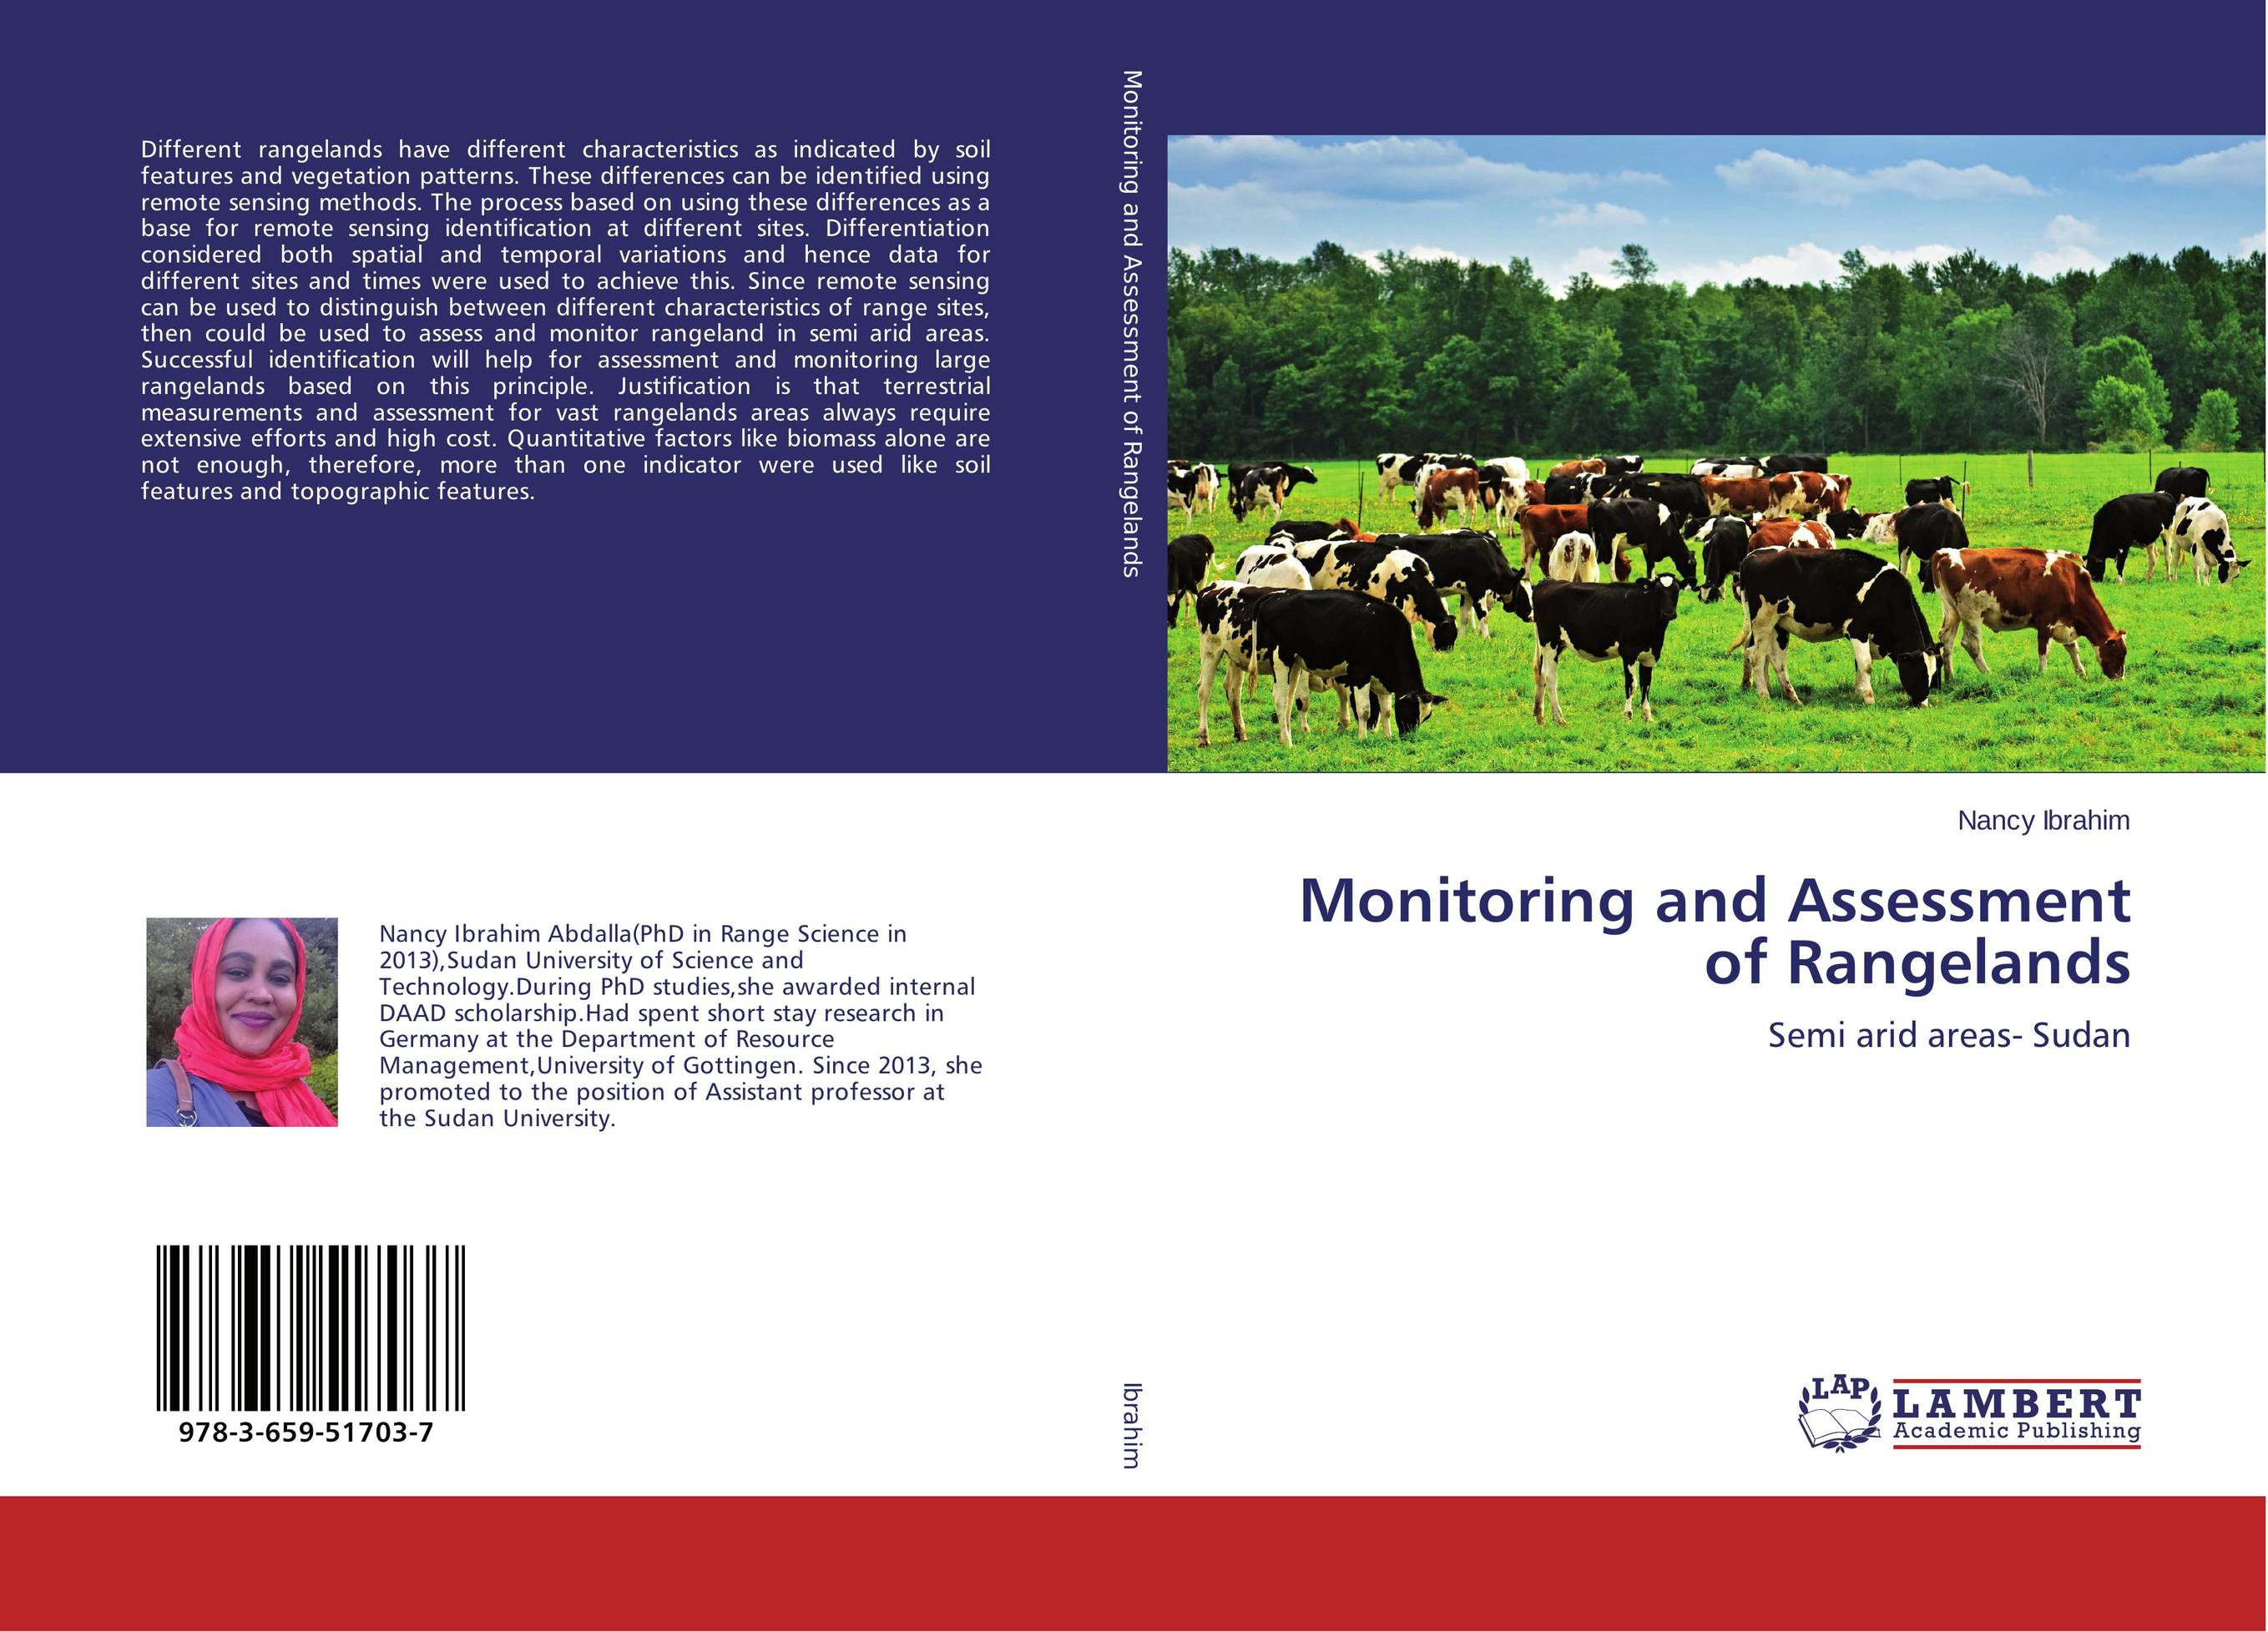 Monitoring and Assessment of Rangelands